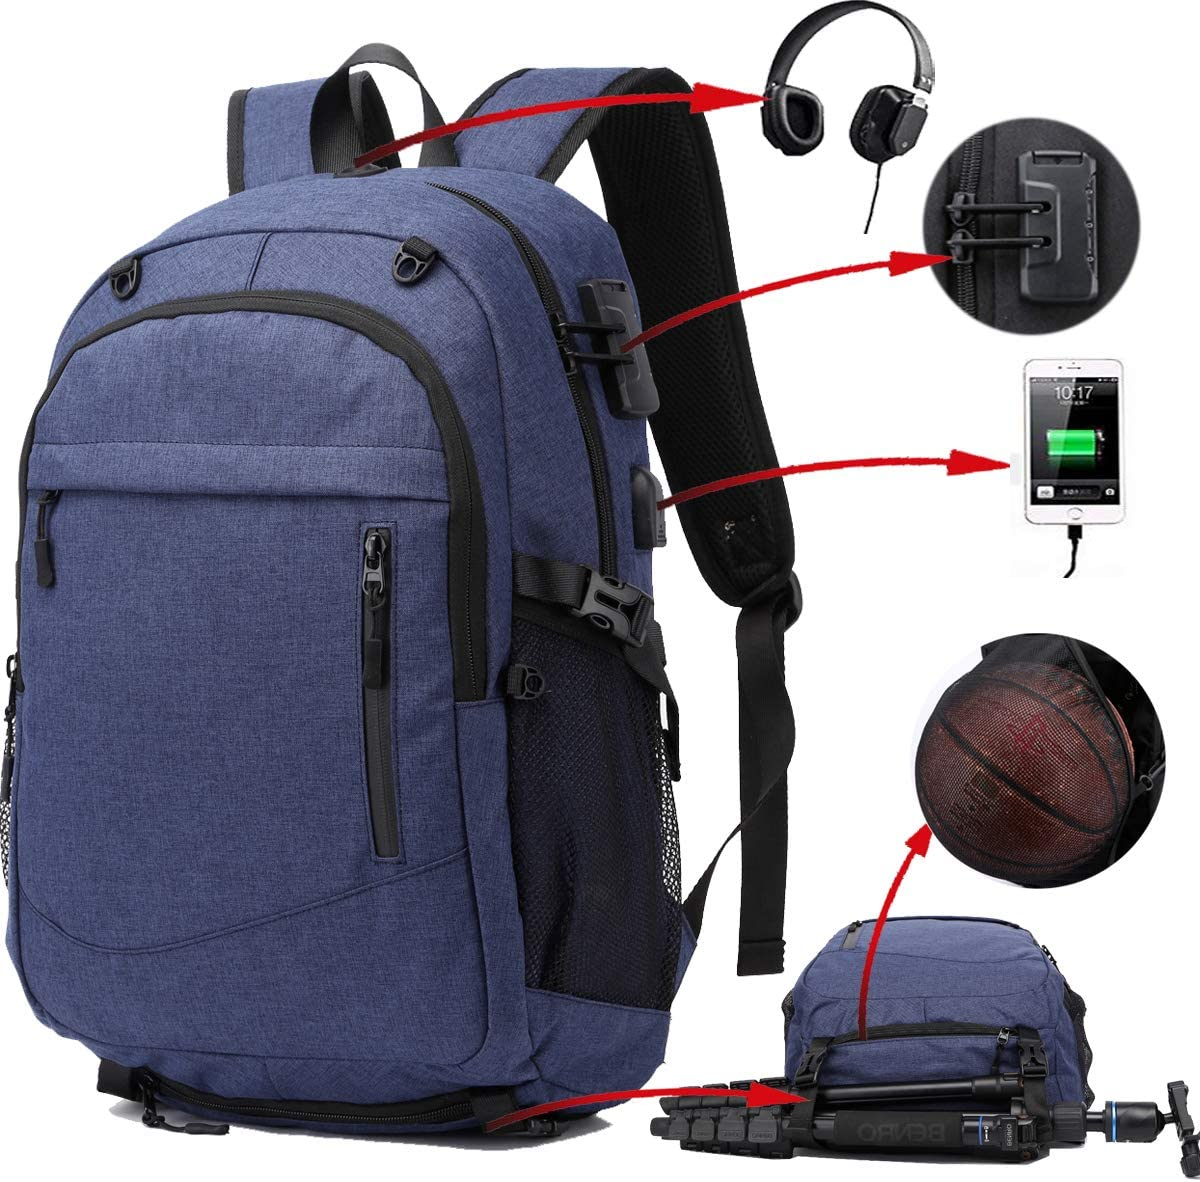 Travel Laptop Backpack, Extra Large Anti Theft Laptop Bag, Basketball Soccer Sports Backpack with USB Charging Port, Water Resistant College Computer Backpack, Fit 17 Inch Laptop